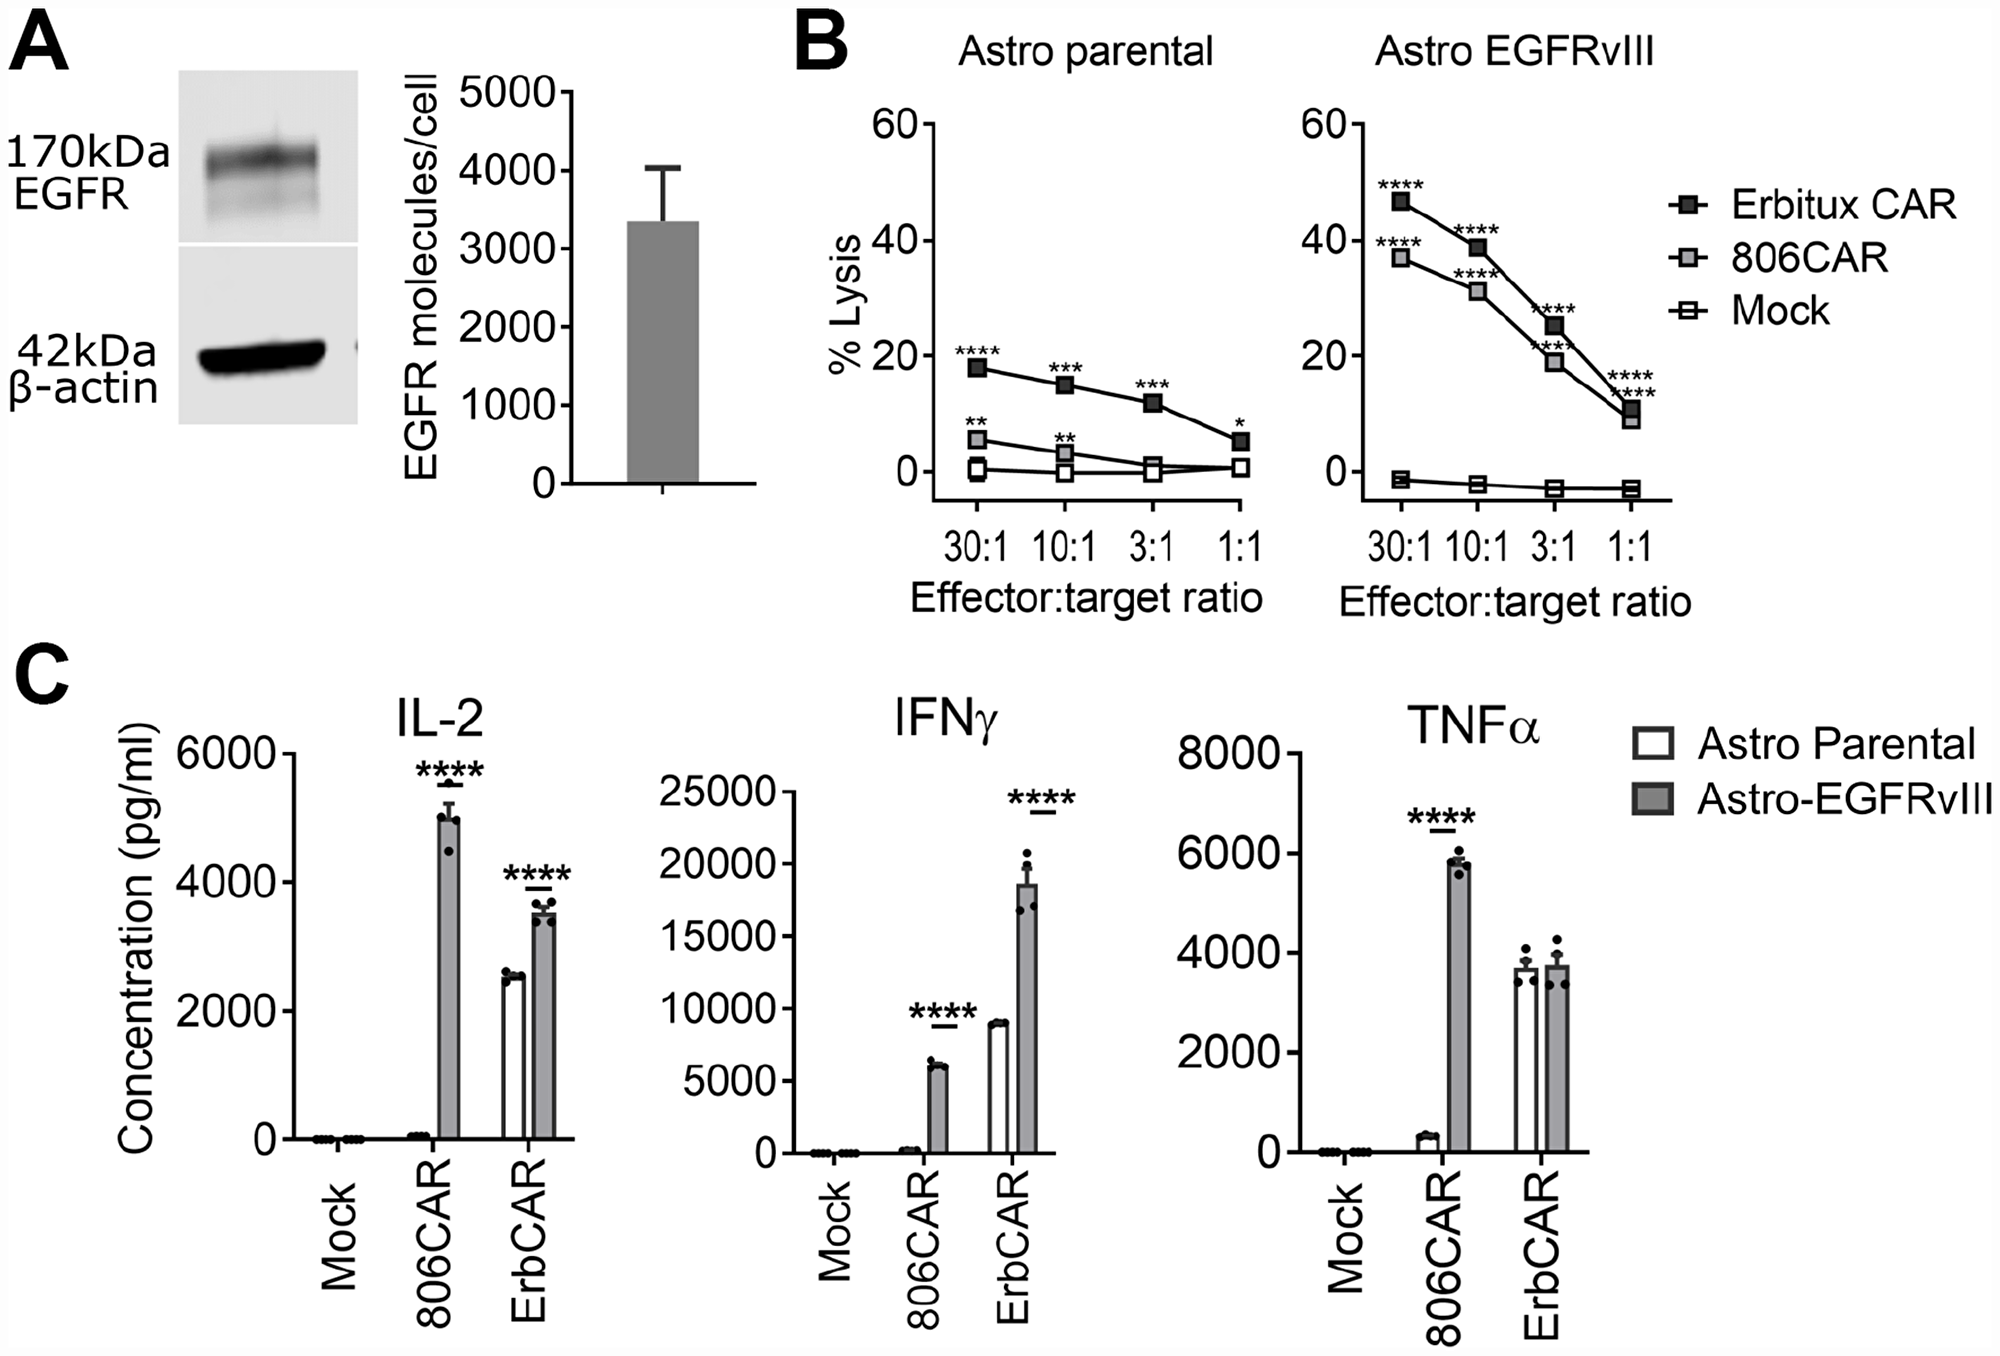 EGFR806-CAR T cells have lower activity against physiologically expressed EGFR compared to Erbitux-CAR.